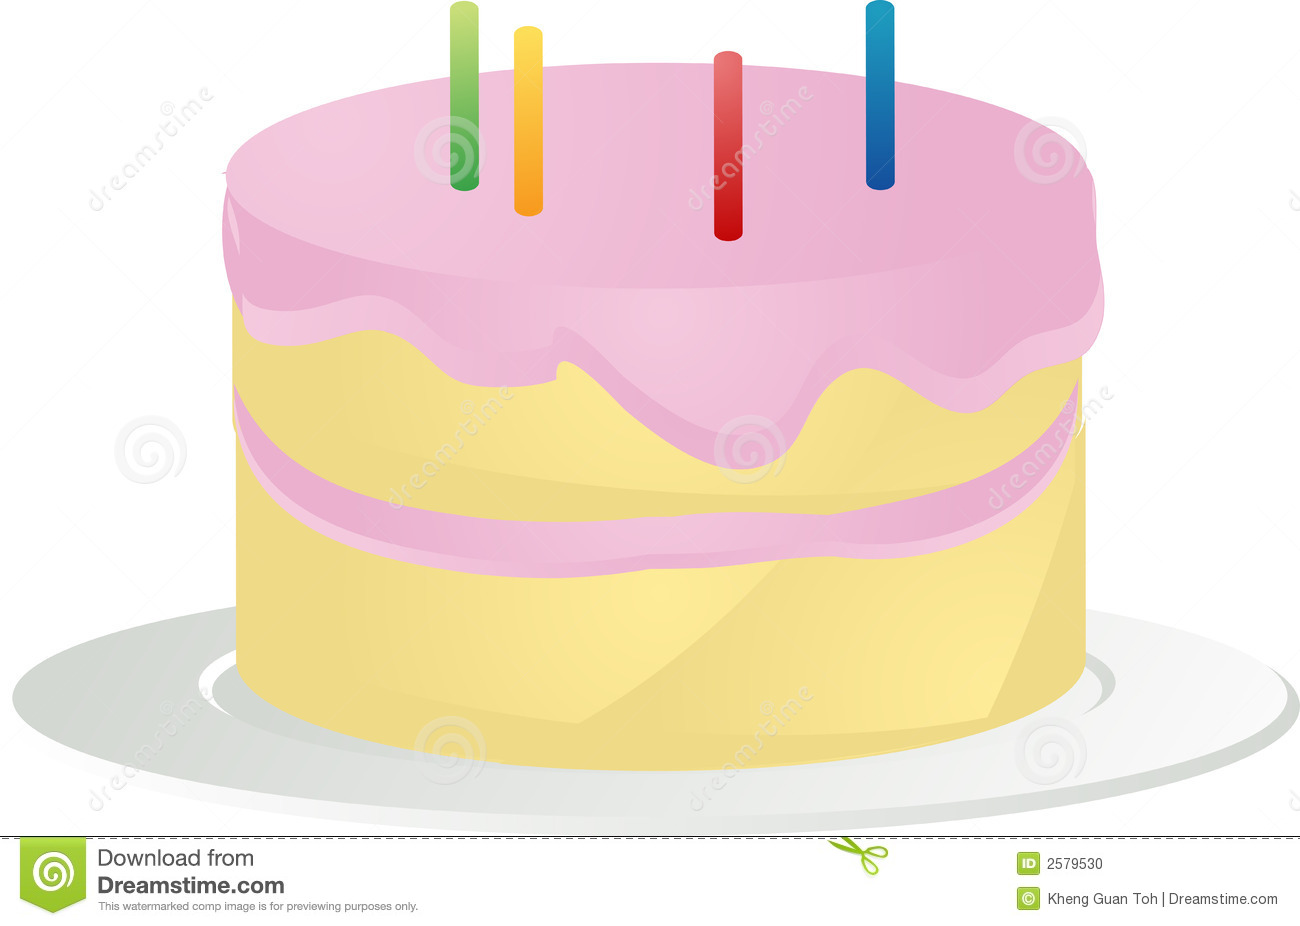 Royalty Free Birthday Cake Images